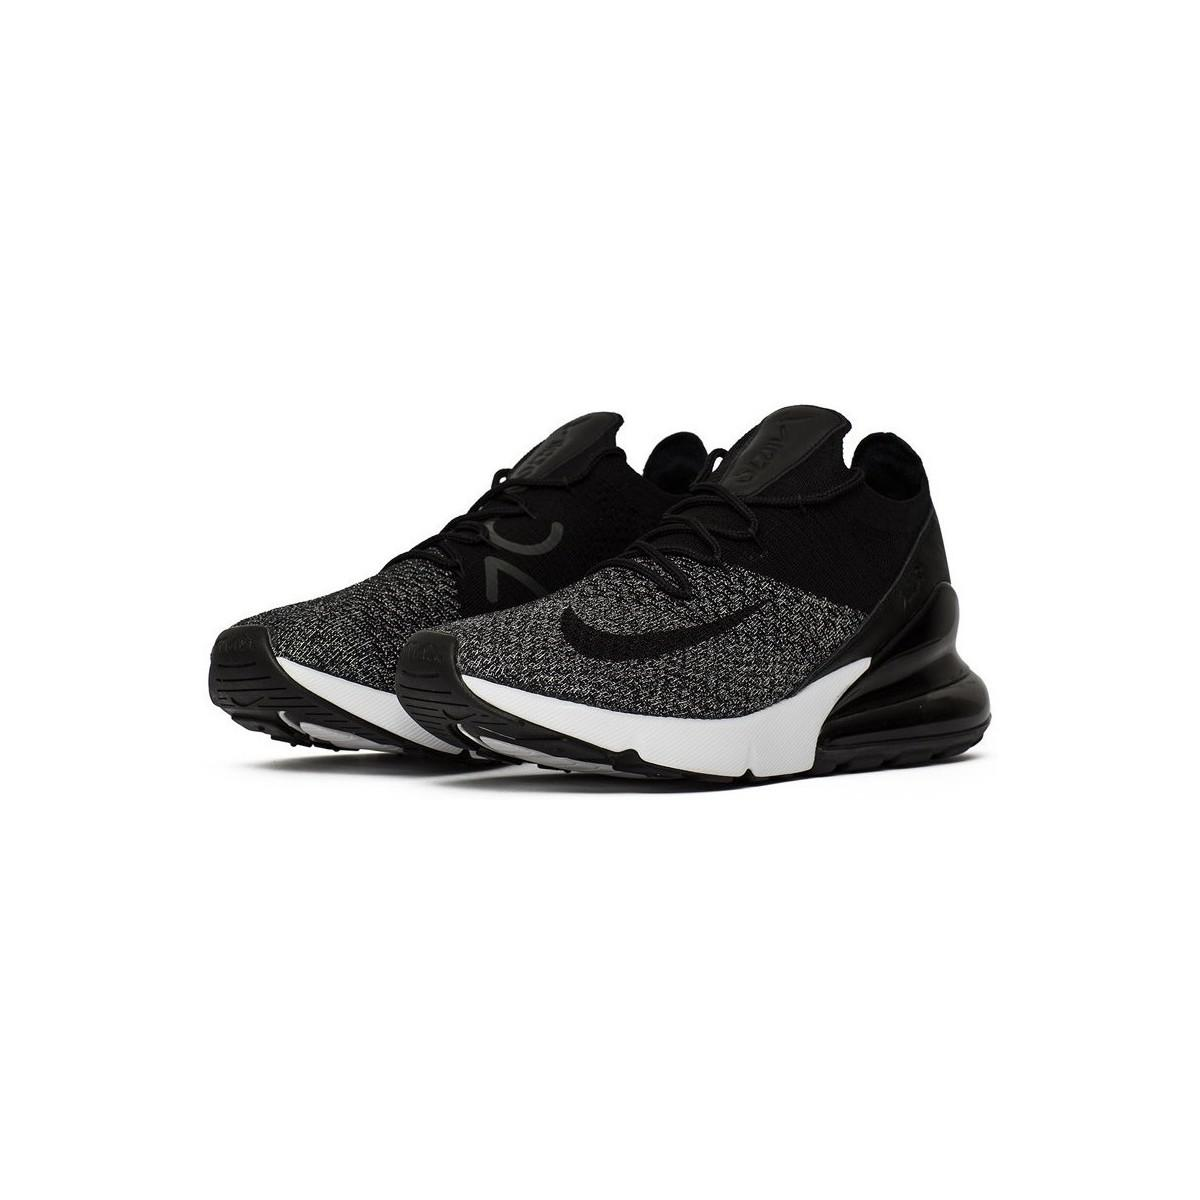 51c70e2a09d0 Nike Air Max 270 Flyknit Men s Shoes (trainers) In Black in Black ...